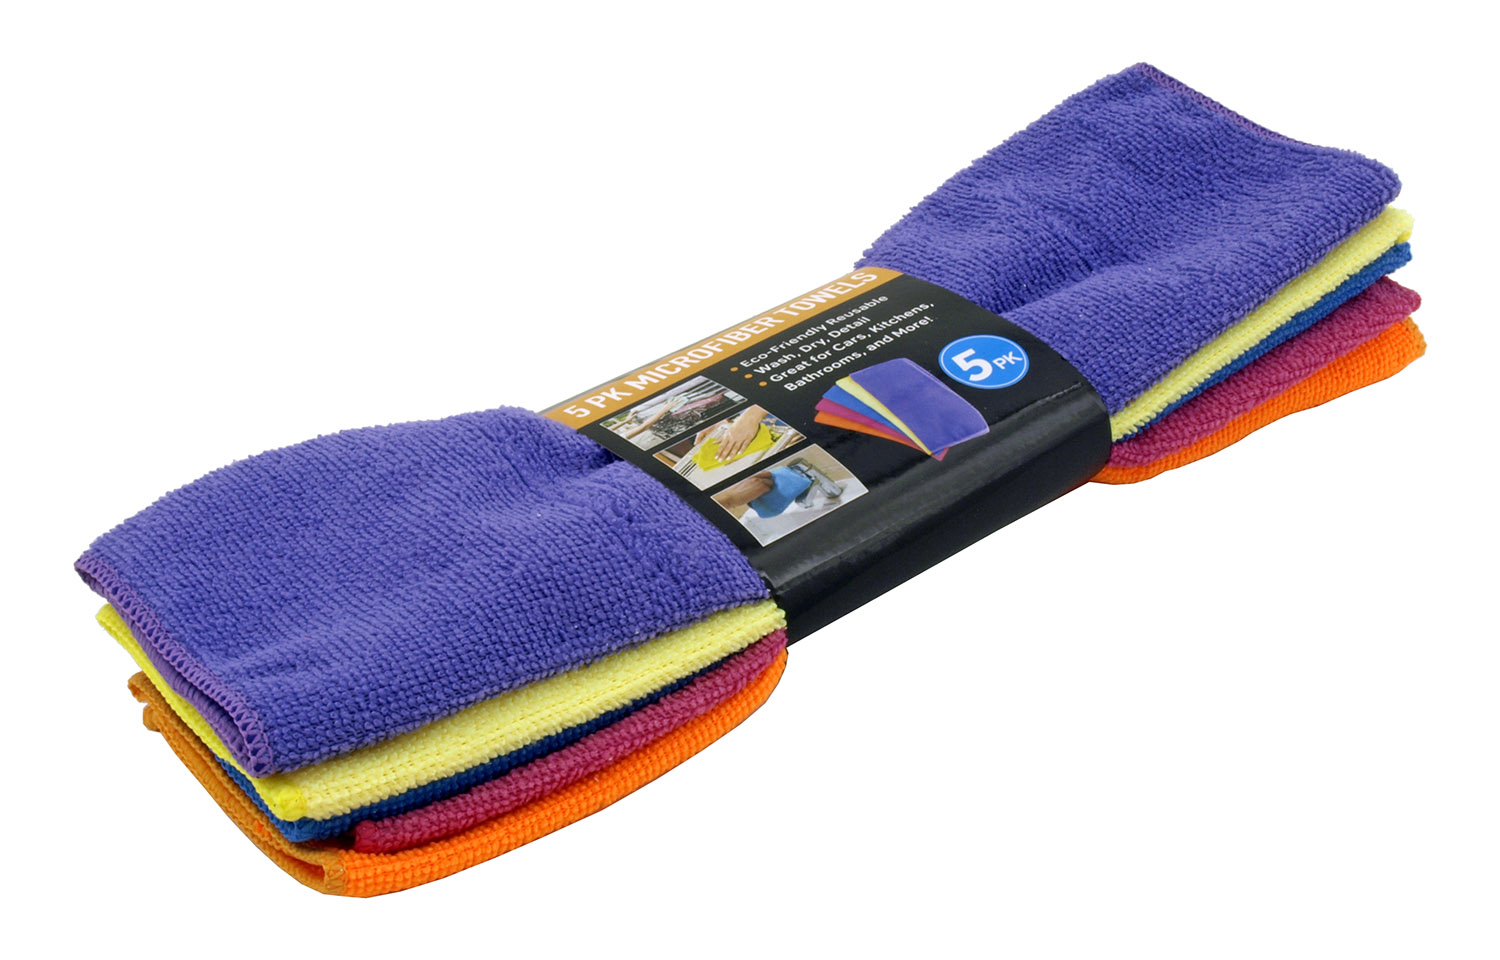 5 pk. Climate and Eco-Friendly Reusable Microfiber Cleaning Towels - Assorted Colors